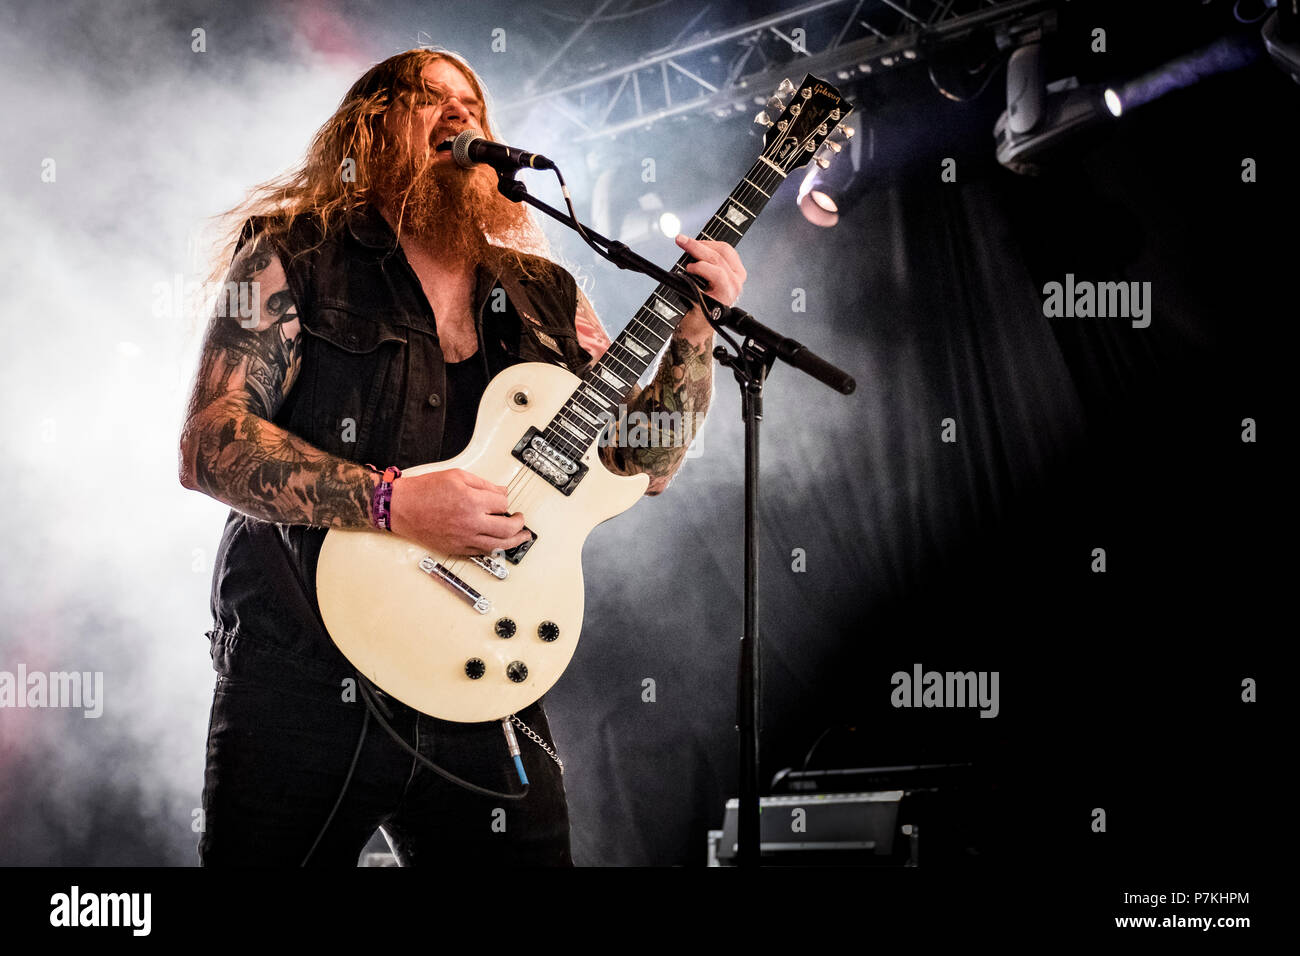 Roskilde, Denmark. 6th July 2018. The American extreme metal band Skeletonwitch performs a live concert at during the Danish music festival Roskilde Festival 2018. Here guitarist Nate Garnette a.k.a. S N8 Feet Under is seen live on stage. (Photo credit: Gonzales Photo - Kim M. Leland). Credit: Gonzales Photo/Alamy Live News - Stock Image